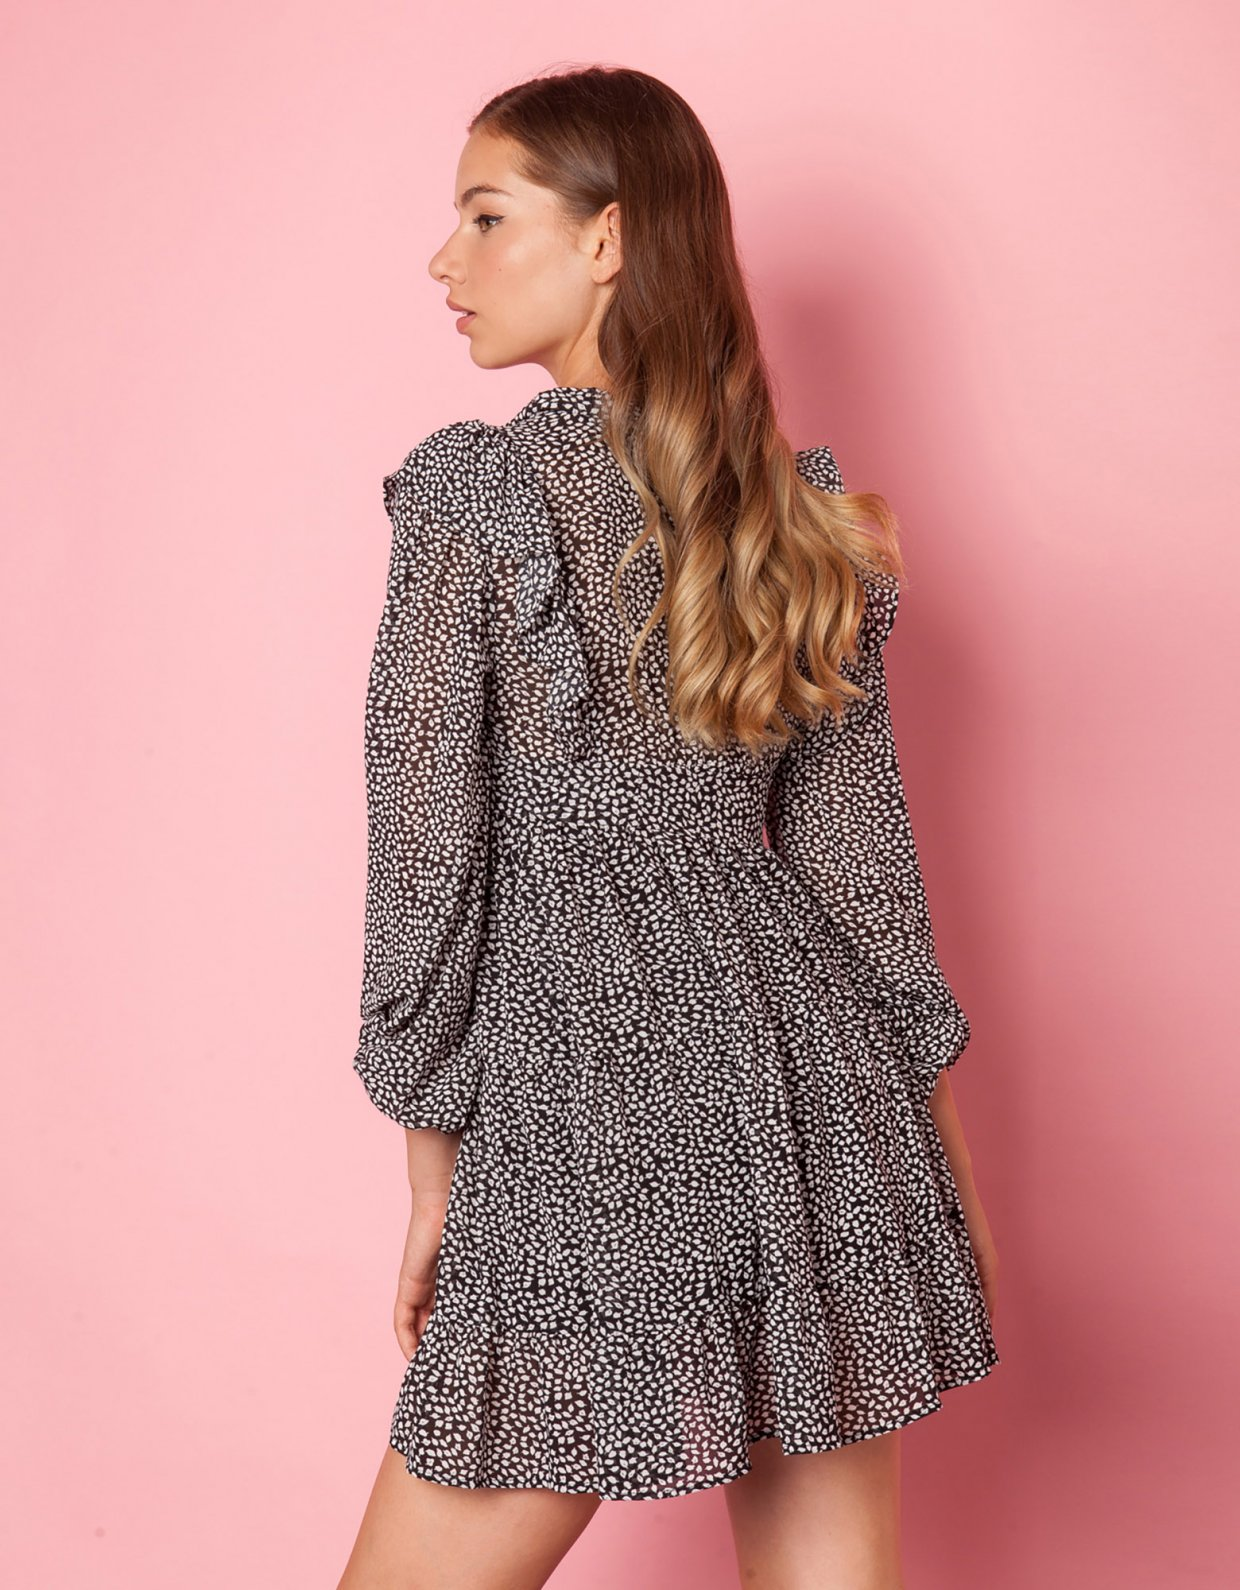 Mallory the label Key to my heart black & white dress